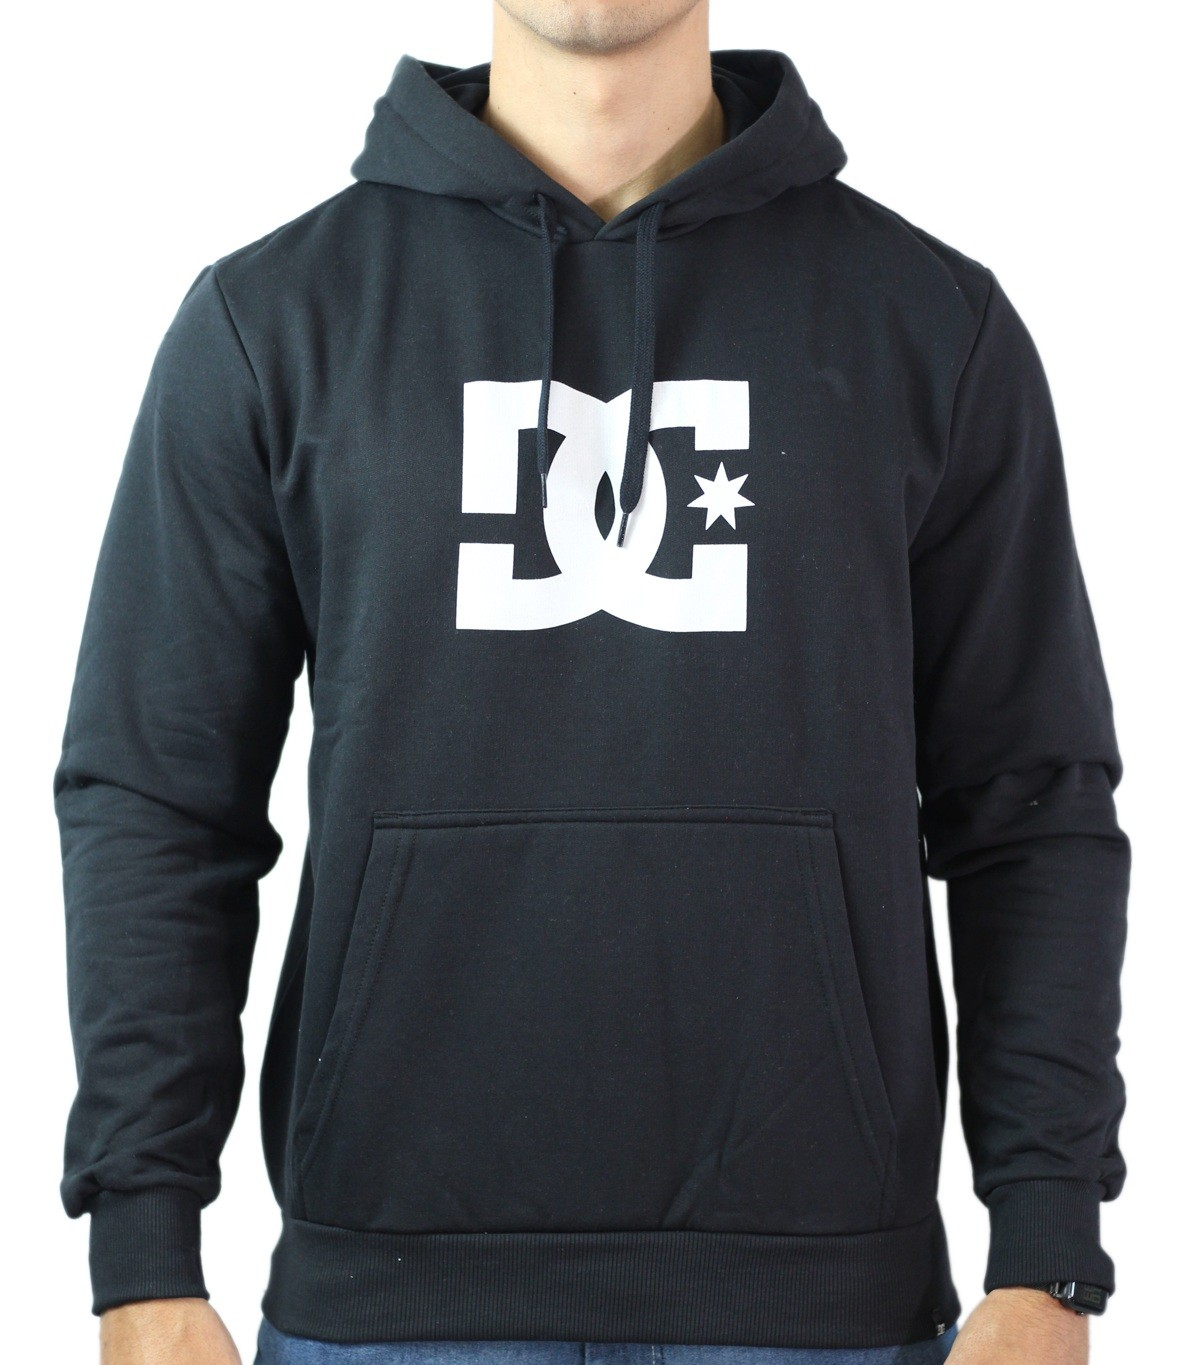 Moletom Dc Shoes Star Masculino - Preto